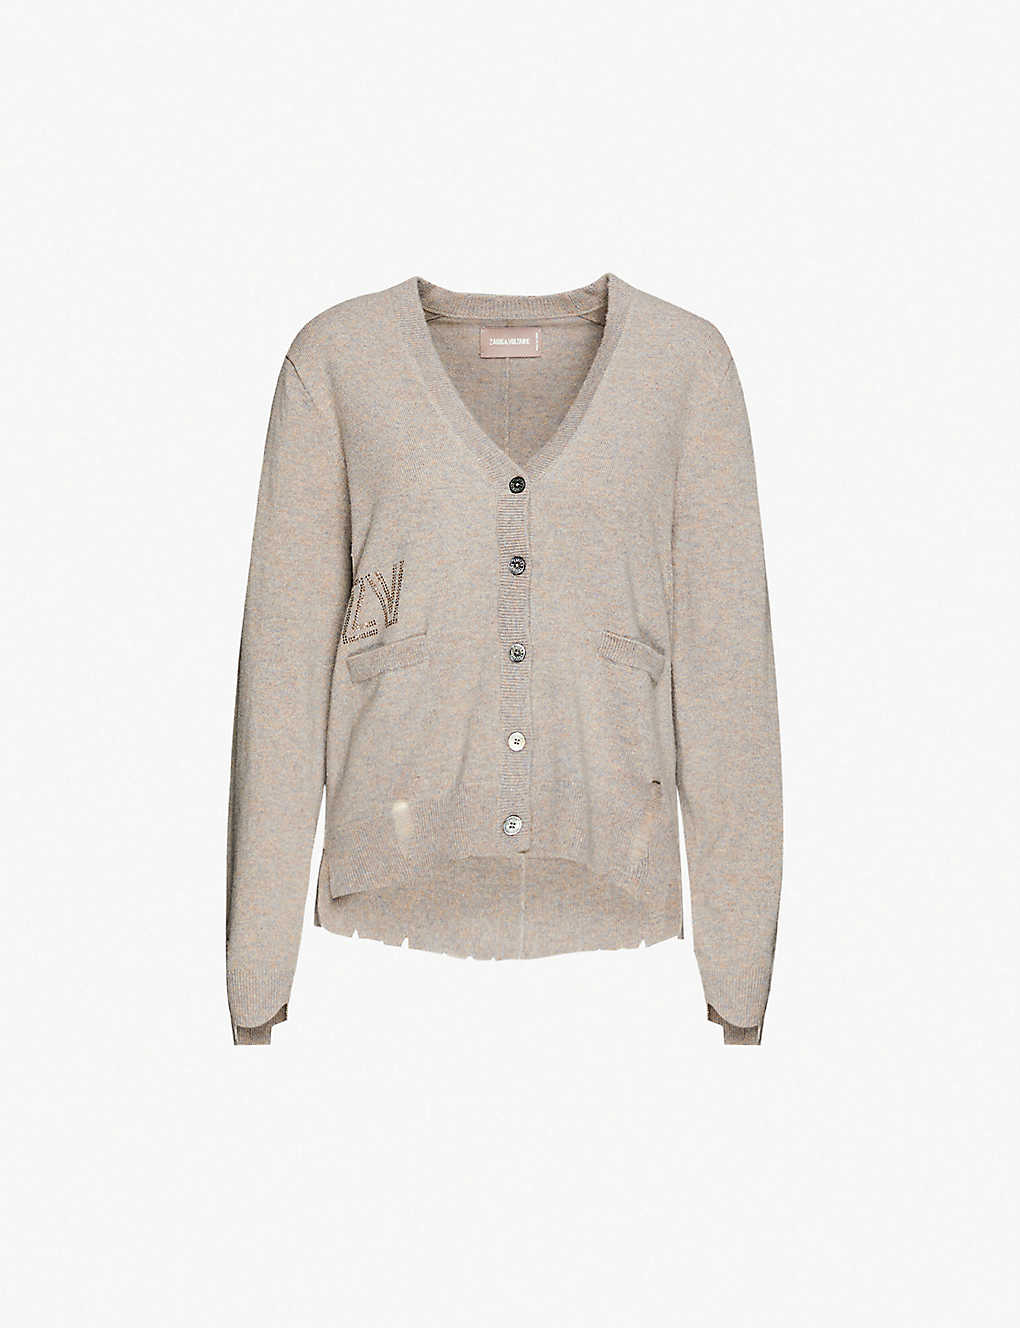 ZADIG&VOLTAIRE: Hopy cashmere distressed cardigan